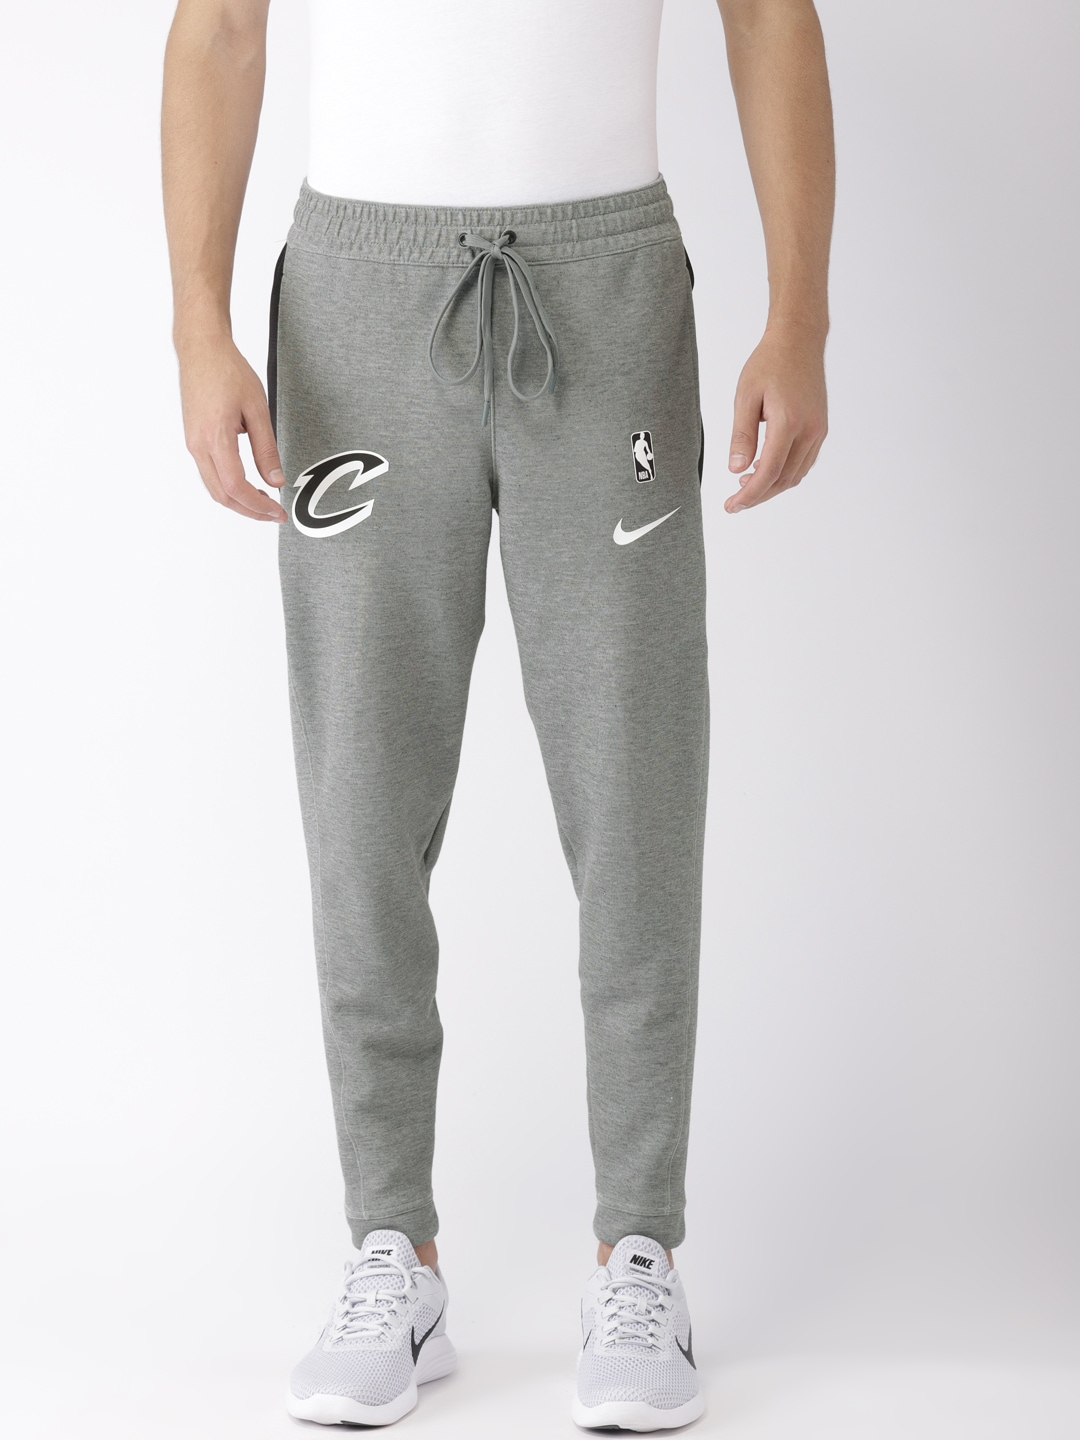 fcf57219496f Nike Joggers - Buy Nike Joggers online in India